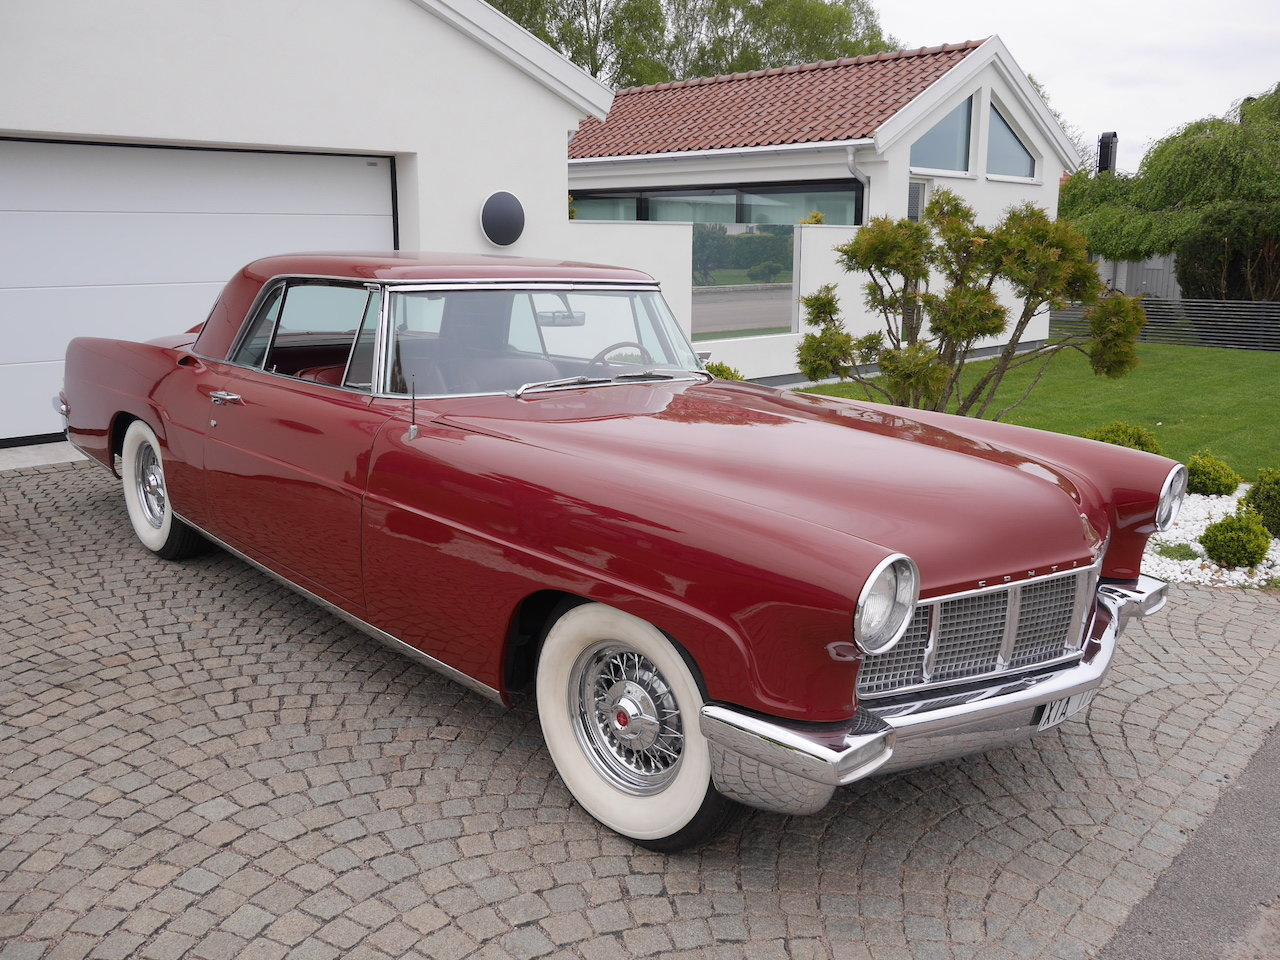 1956 Rare Continental MK2 one of 1500 left For Sale (picture 1 of 5)